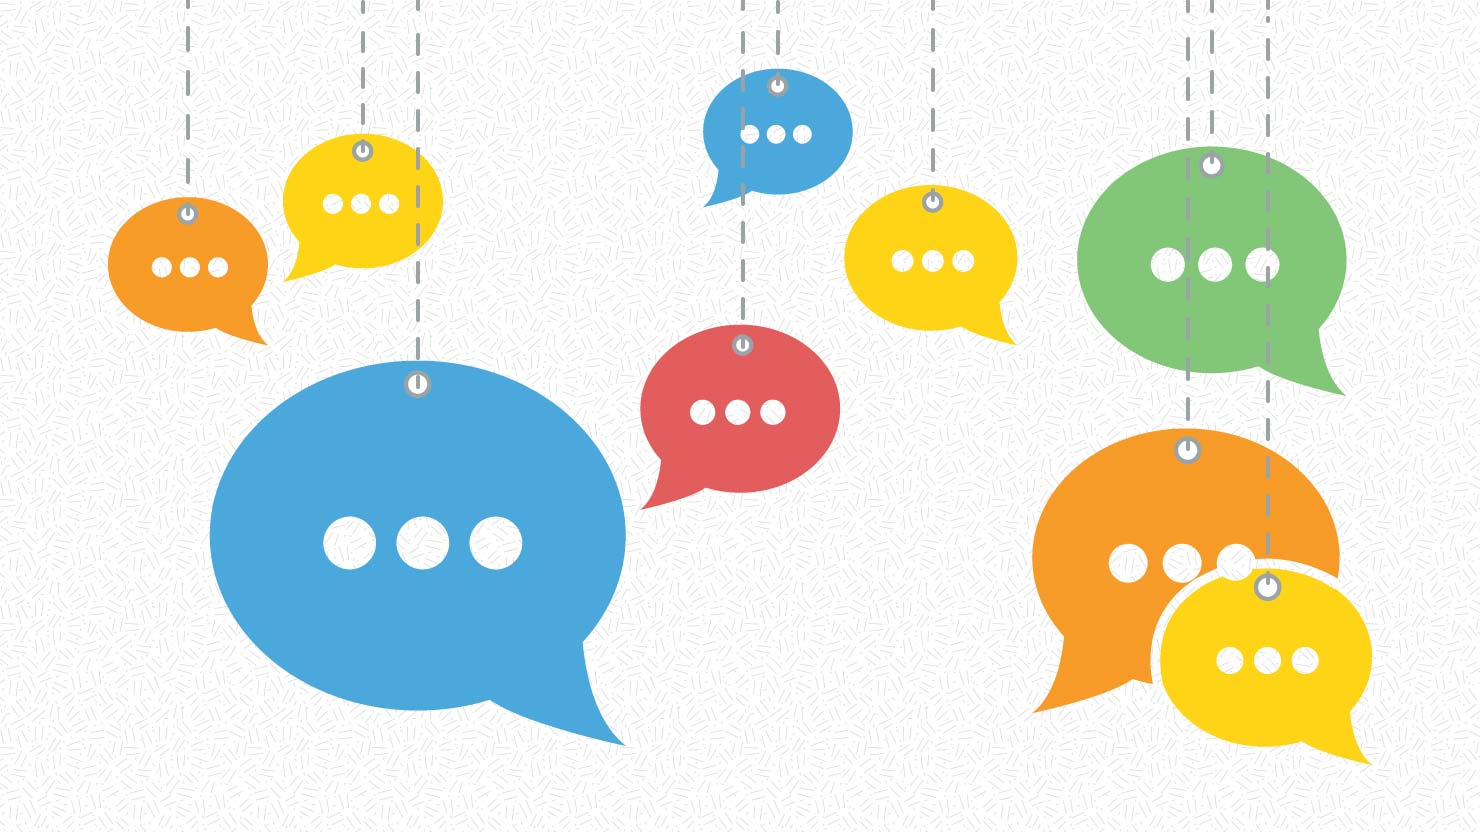 Enterprise communications: Is chat enough?